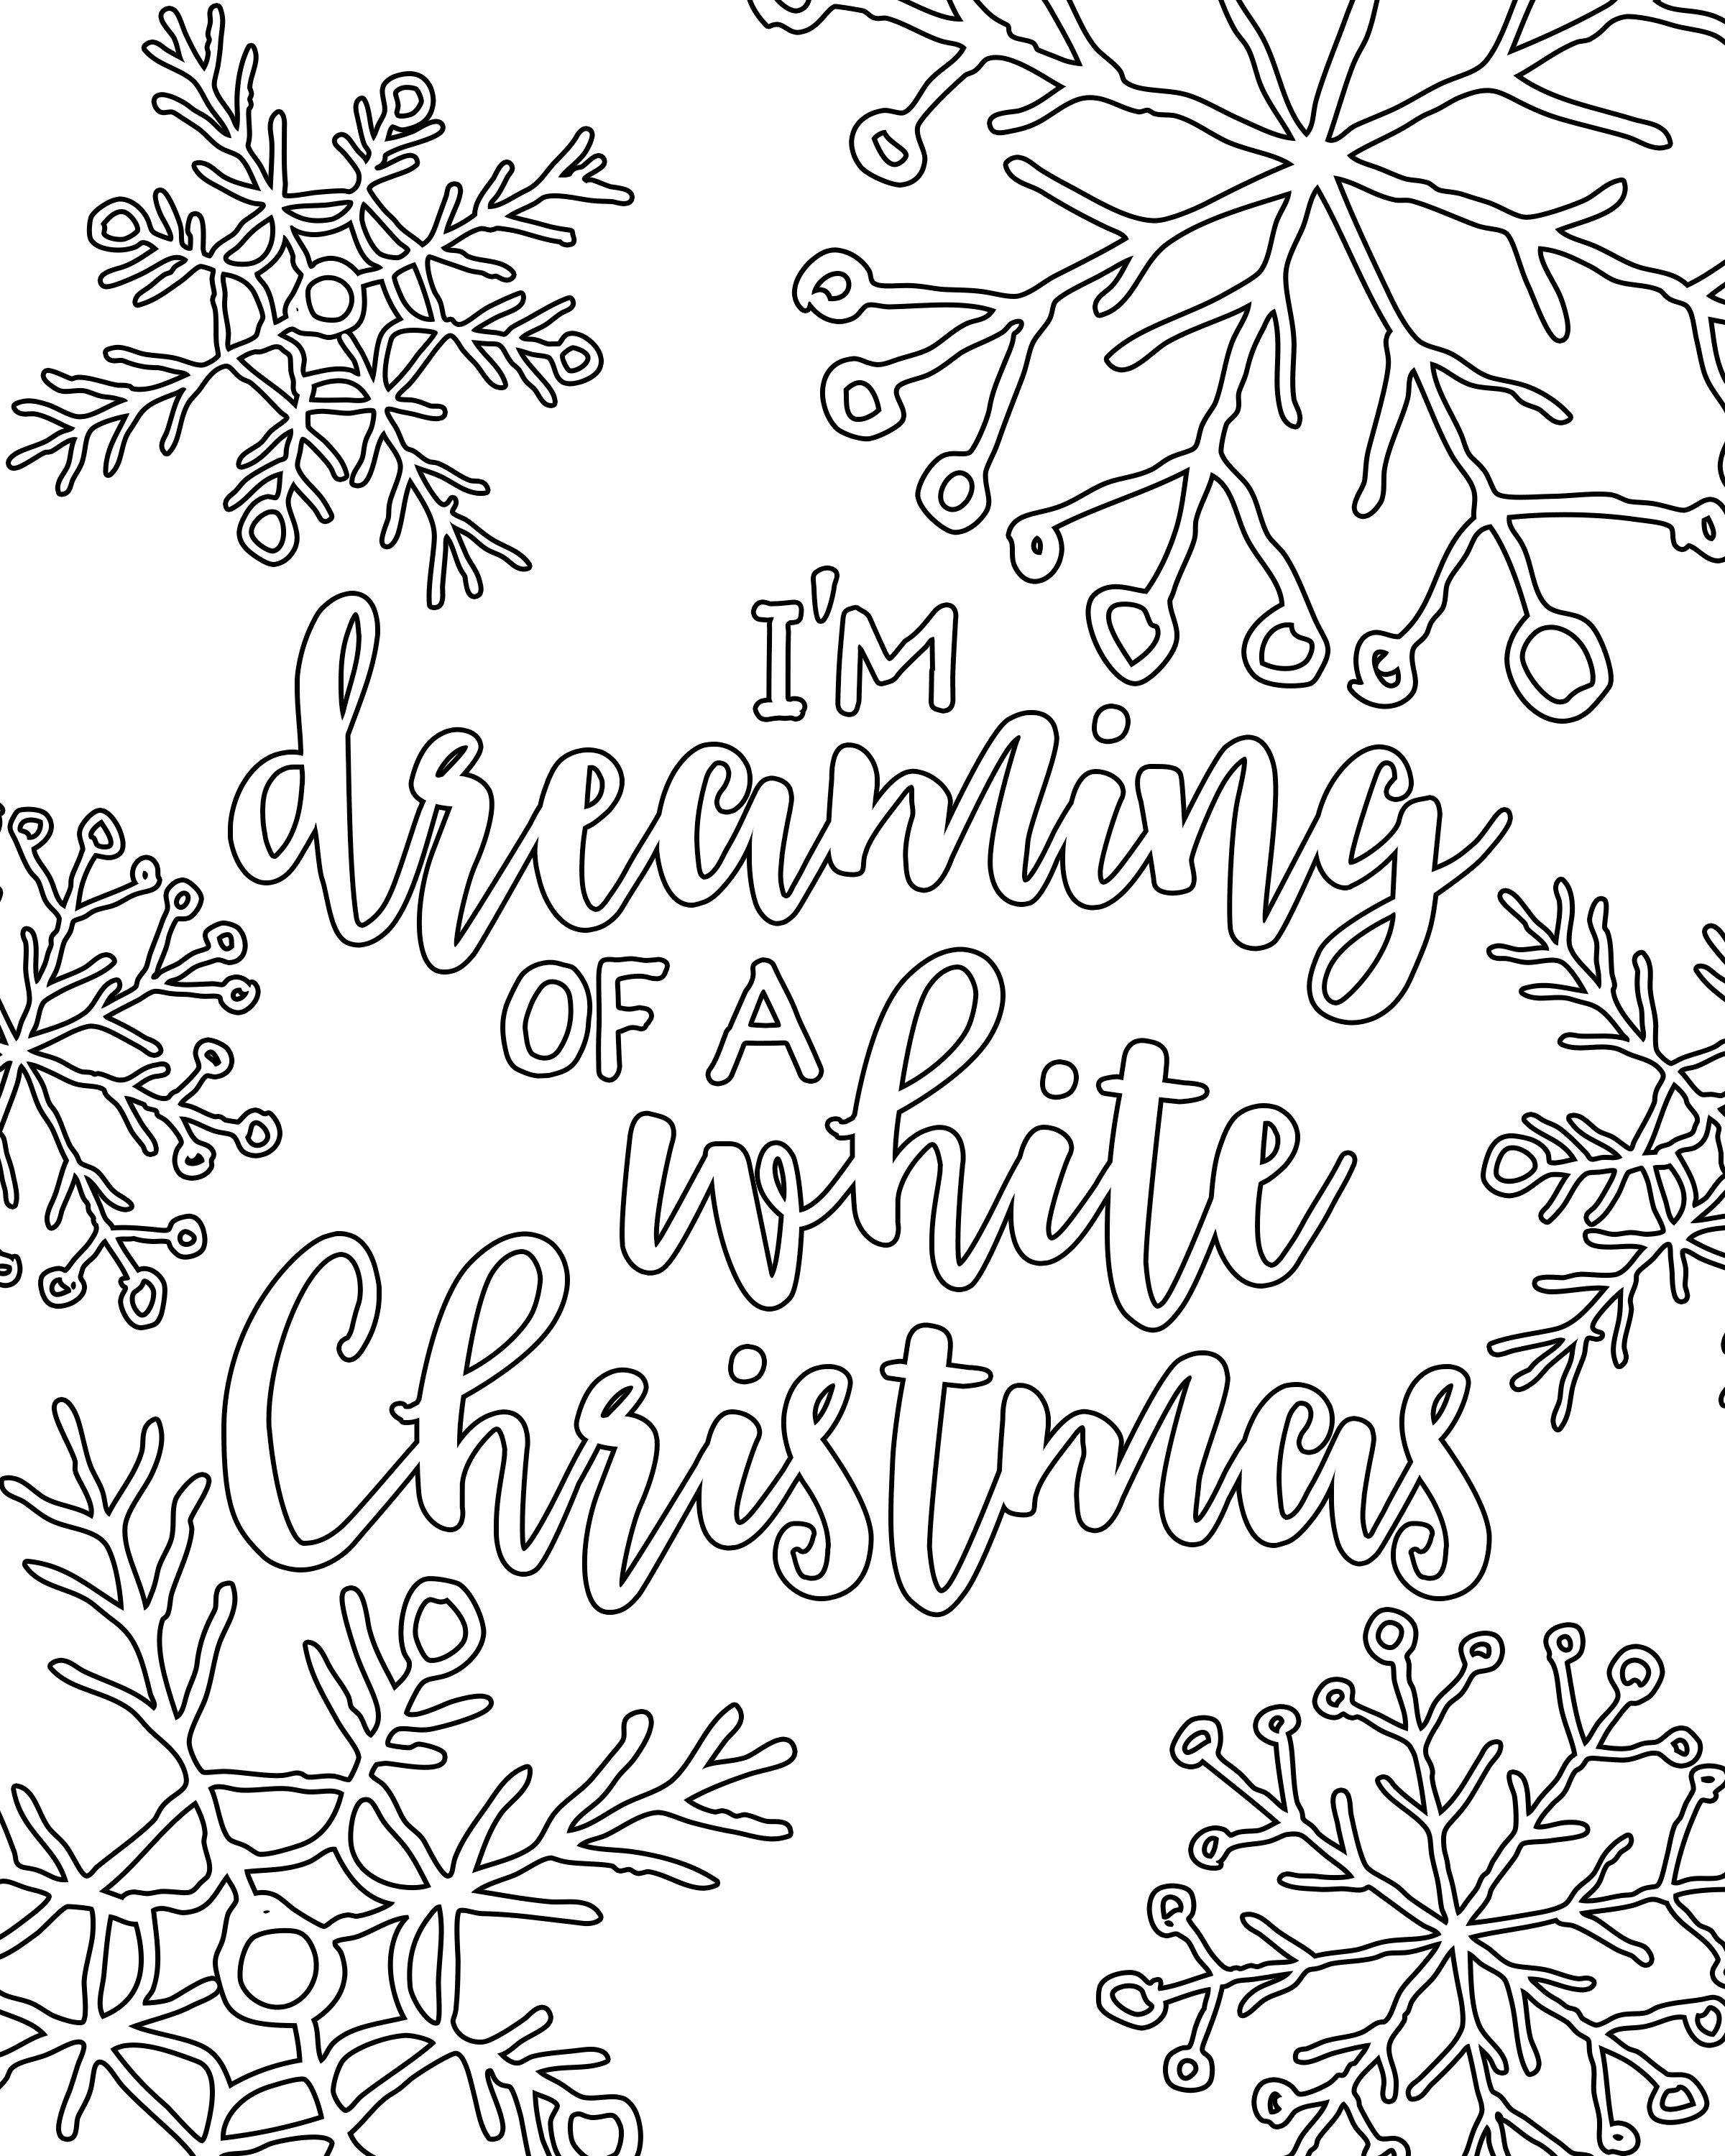 istmas coloring pages - photo#33